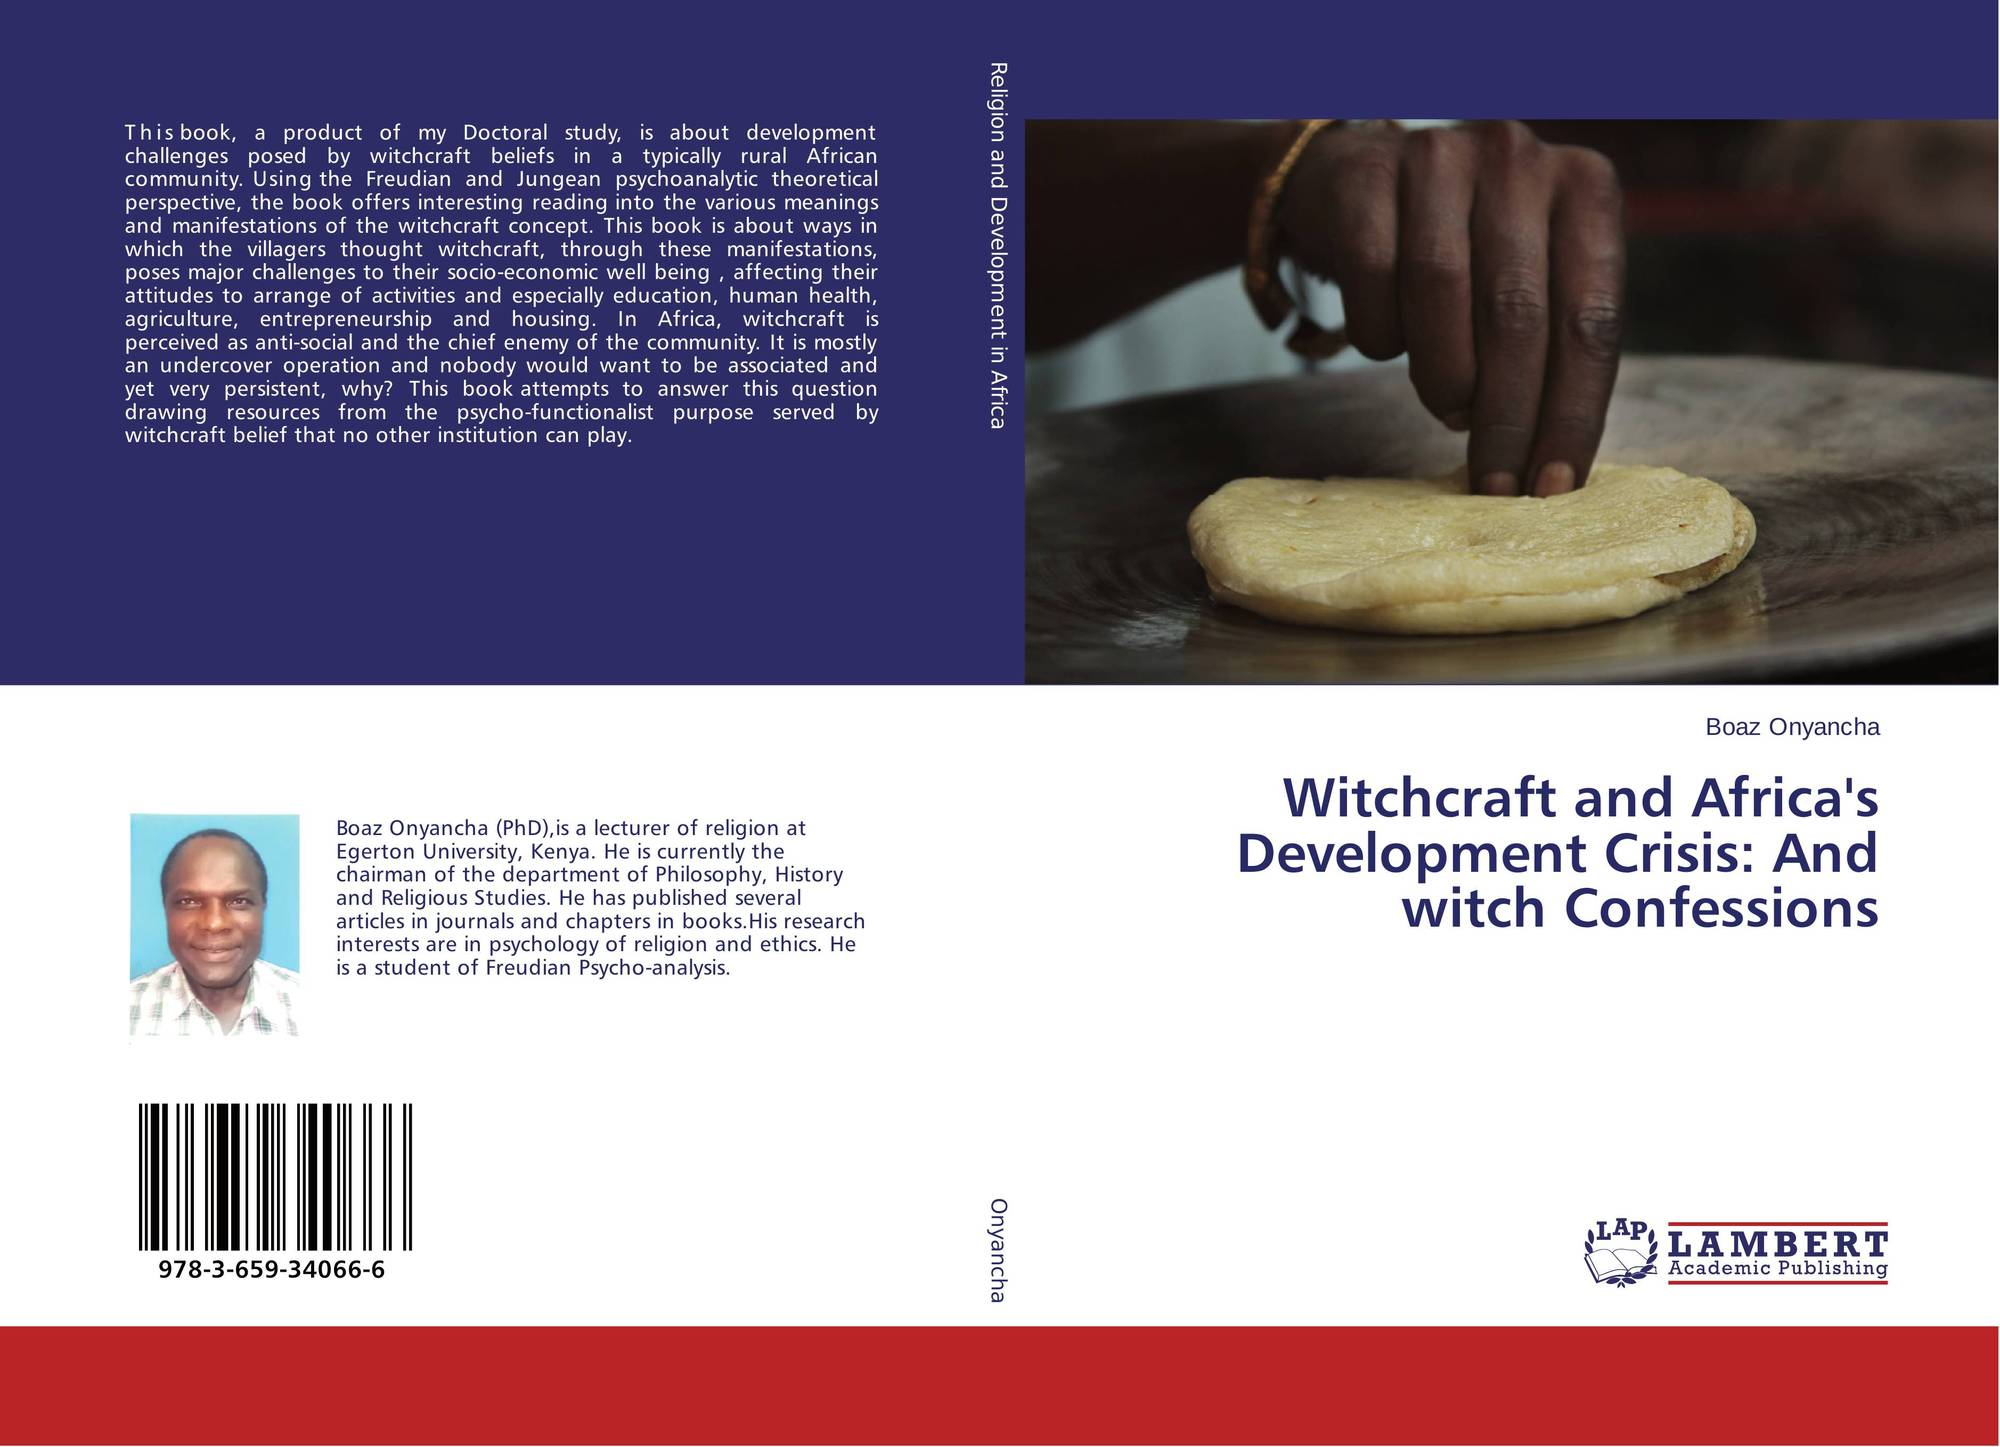 Witchcraft and Africa's Development Crisis: And witch Confessions